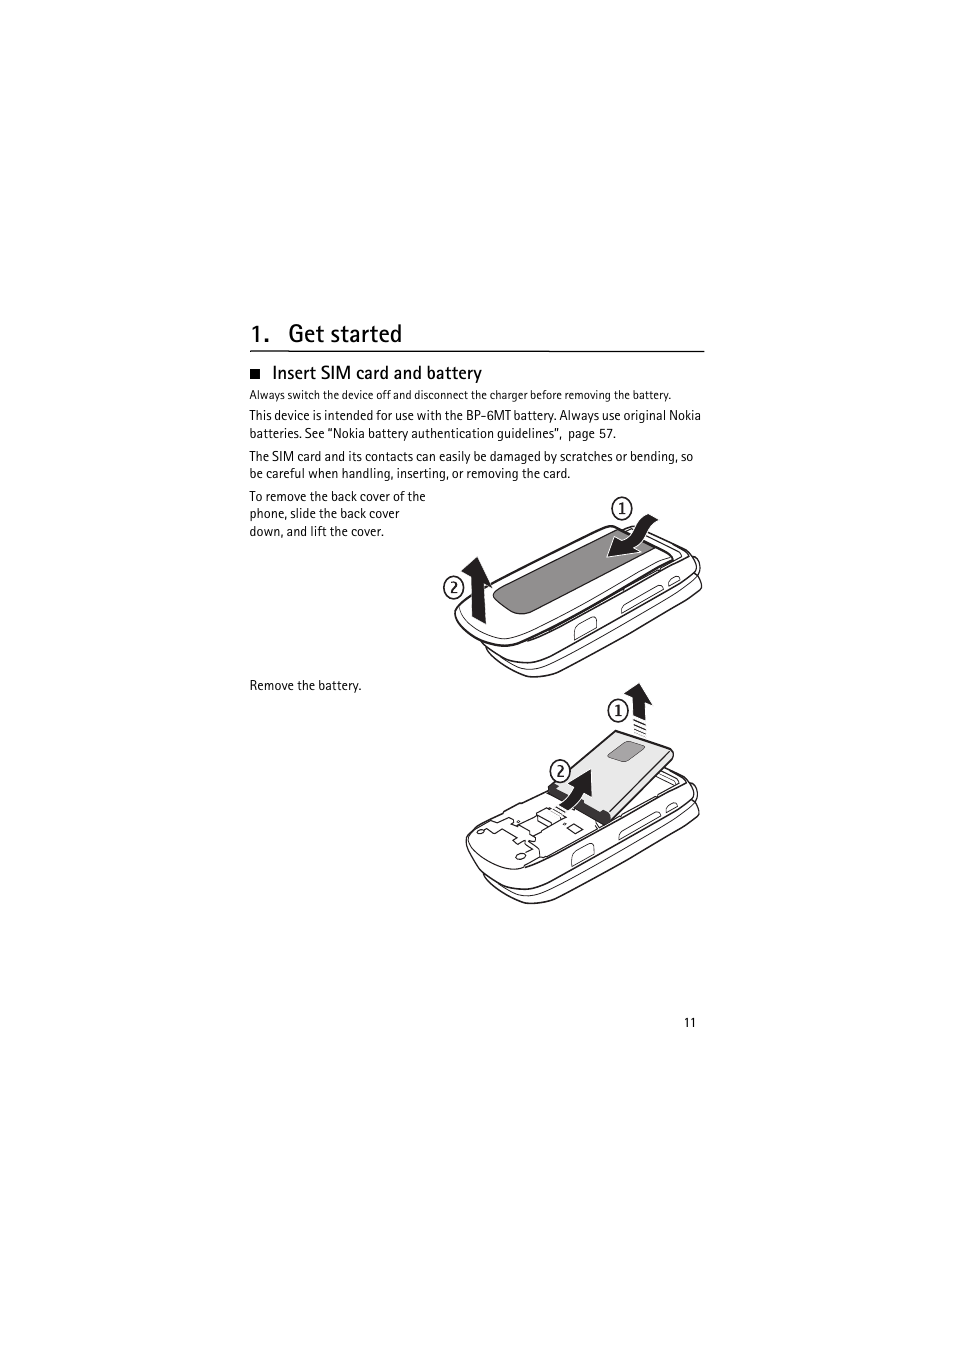 Get started, Insert sim card and battery | Nokia 6350 User Manual | Page 11  / 64